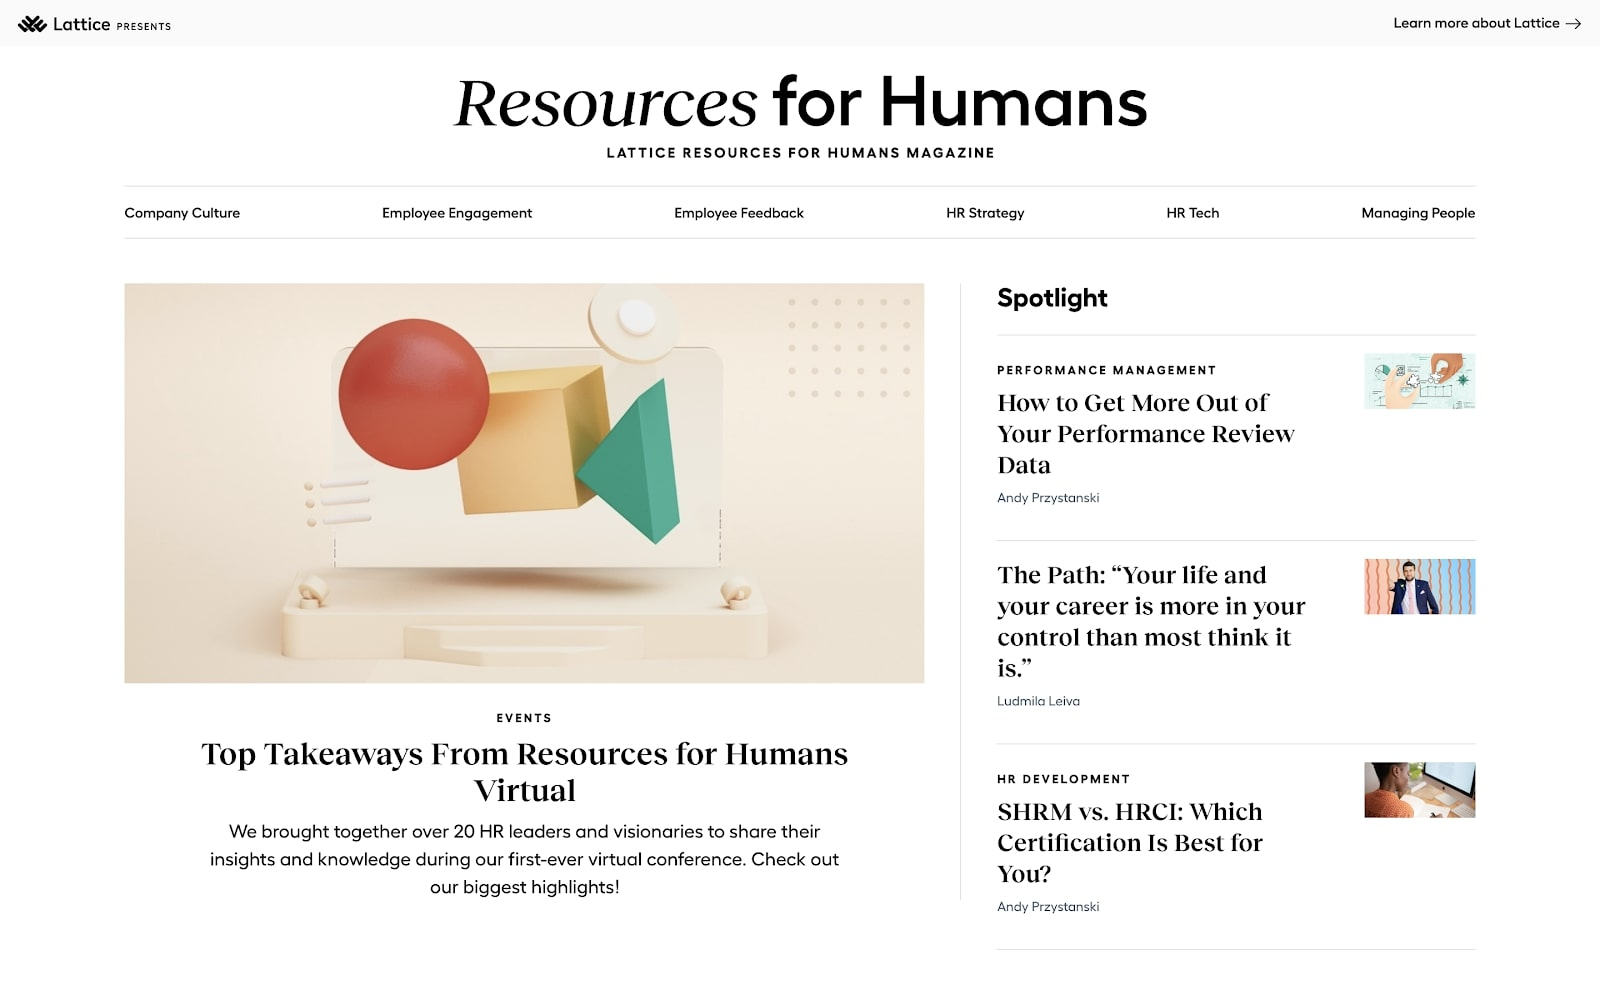 lattice's resources for humans magazine